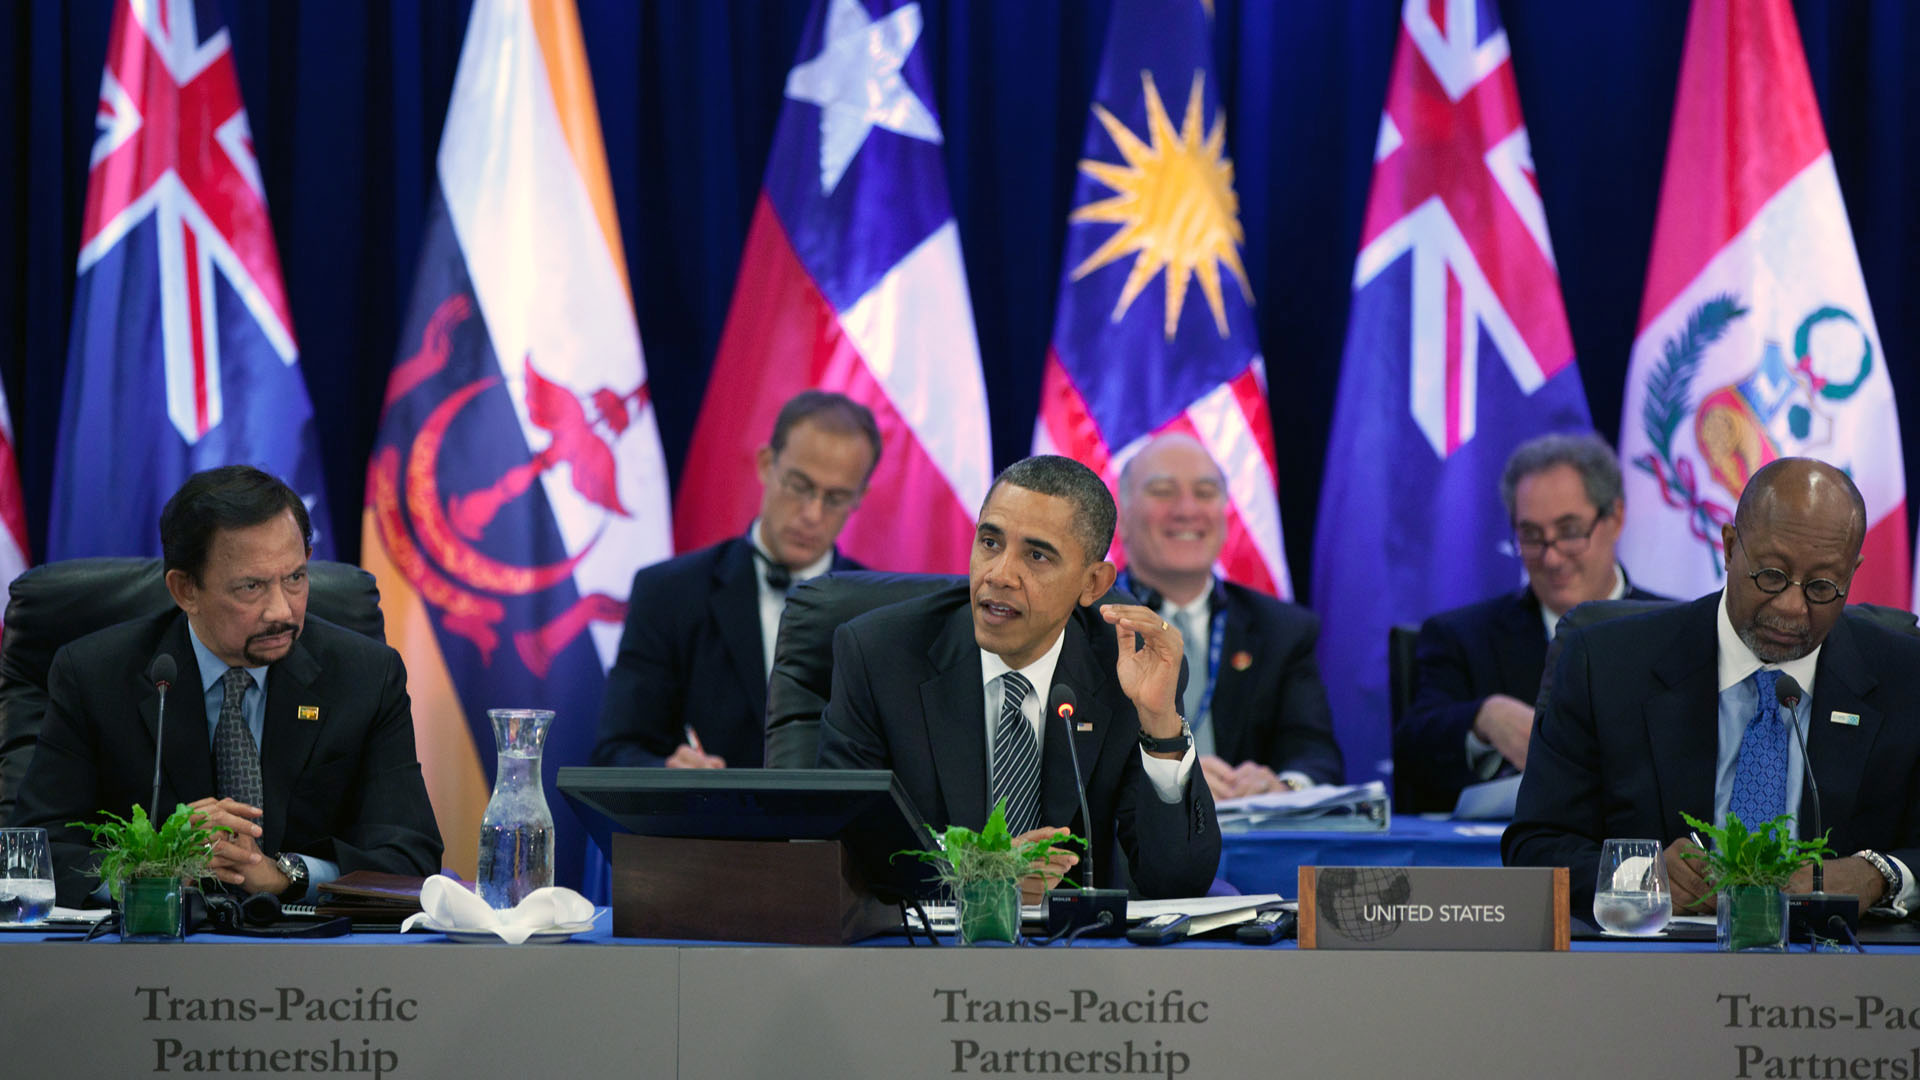 President Barack Obama meets with the Trans-Pacific Partnership at the APEC